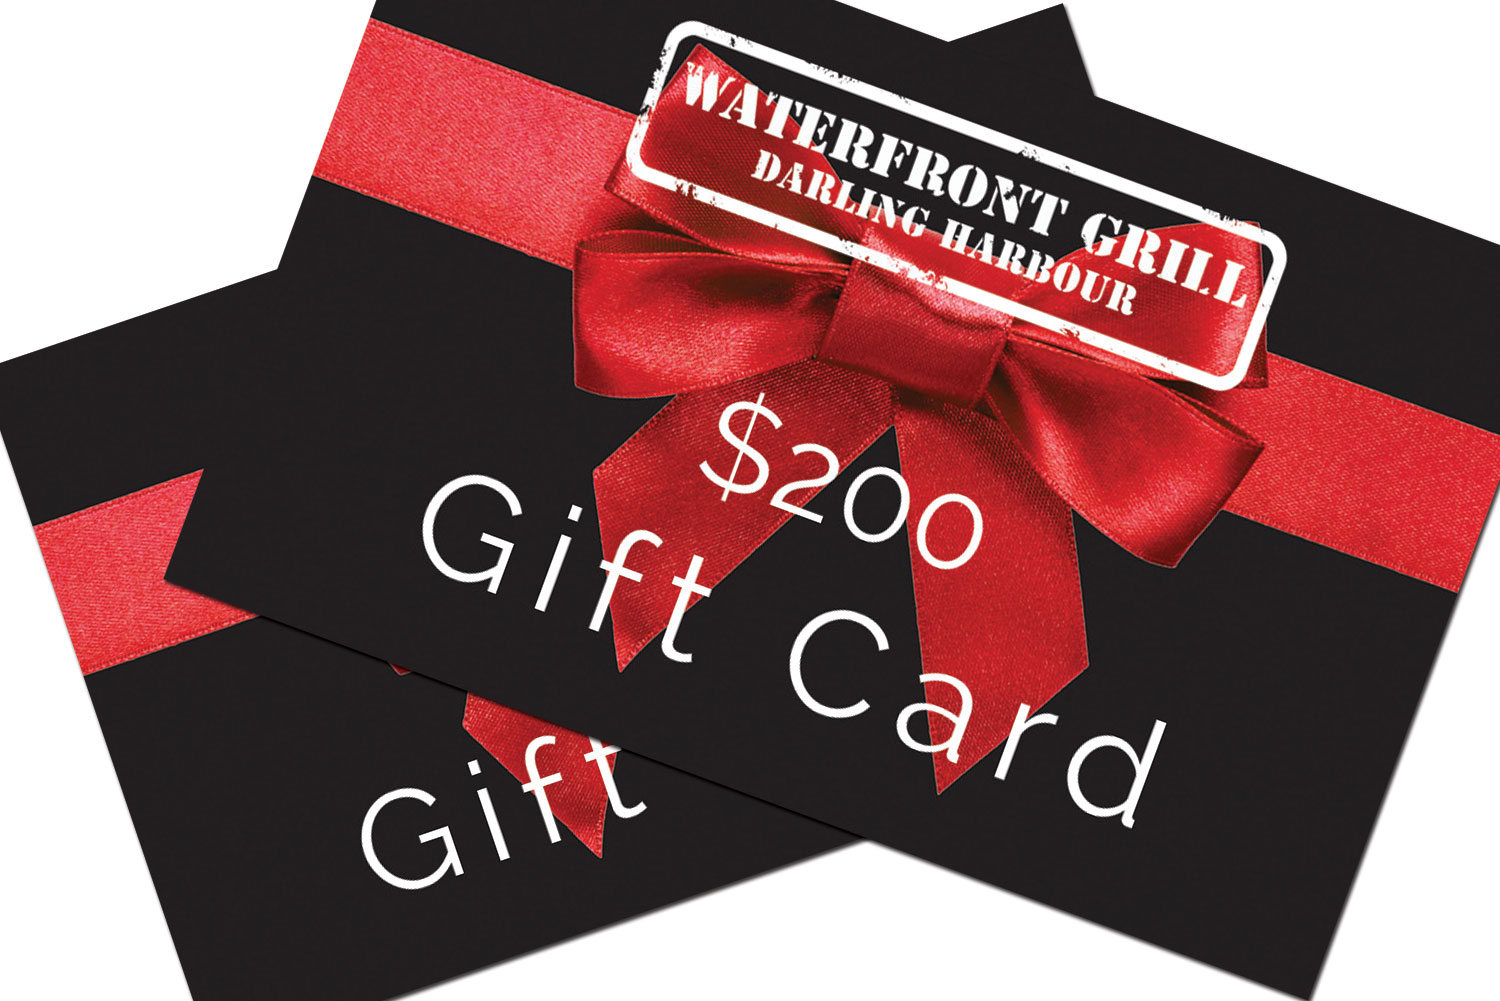 Waterfront-Grill-Gift-Card.jpg